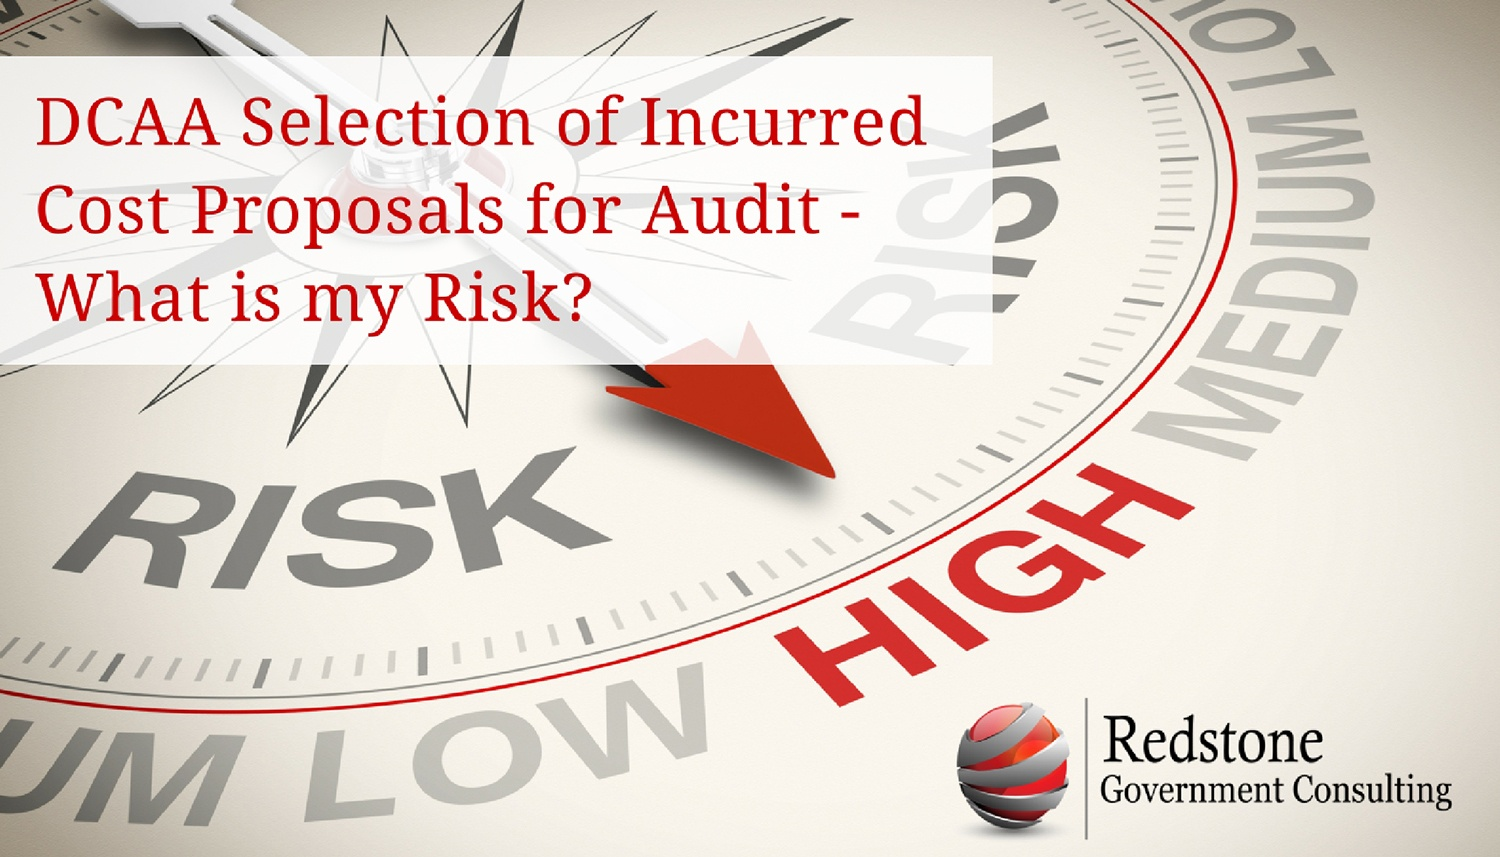 DCAA Selection of Incurred Cost Proposals for Audit - What is my Risk? - Redstone gci